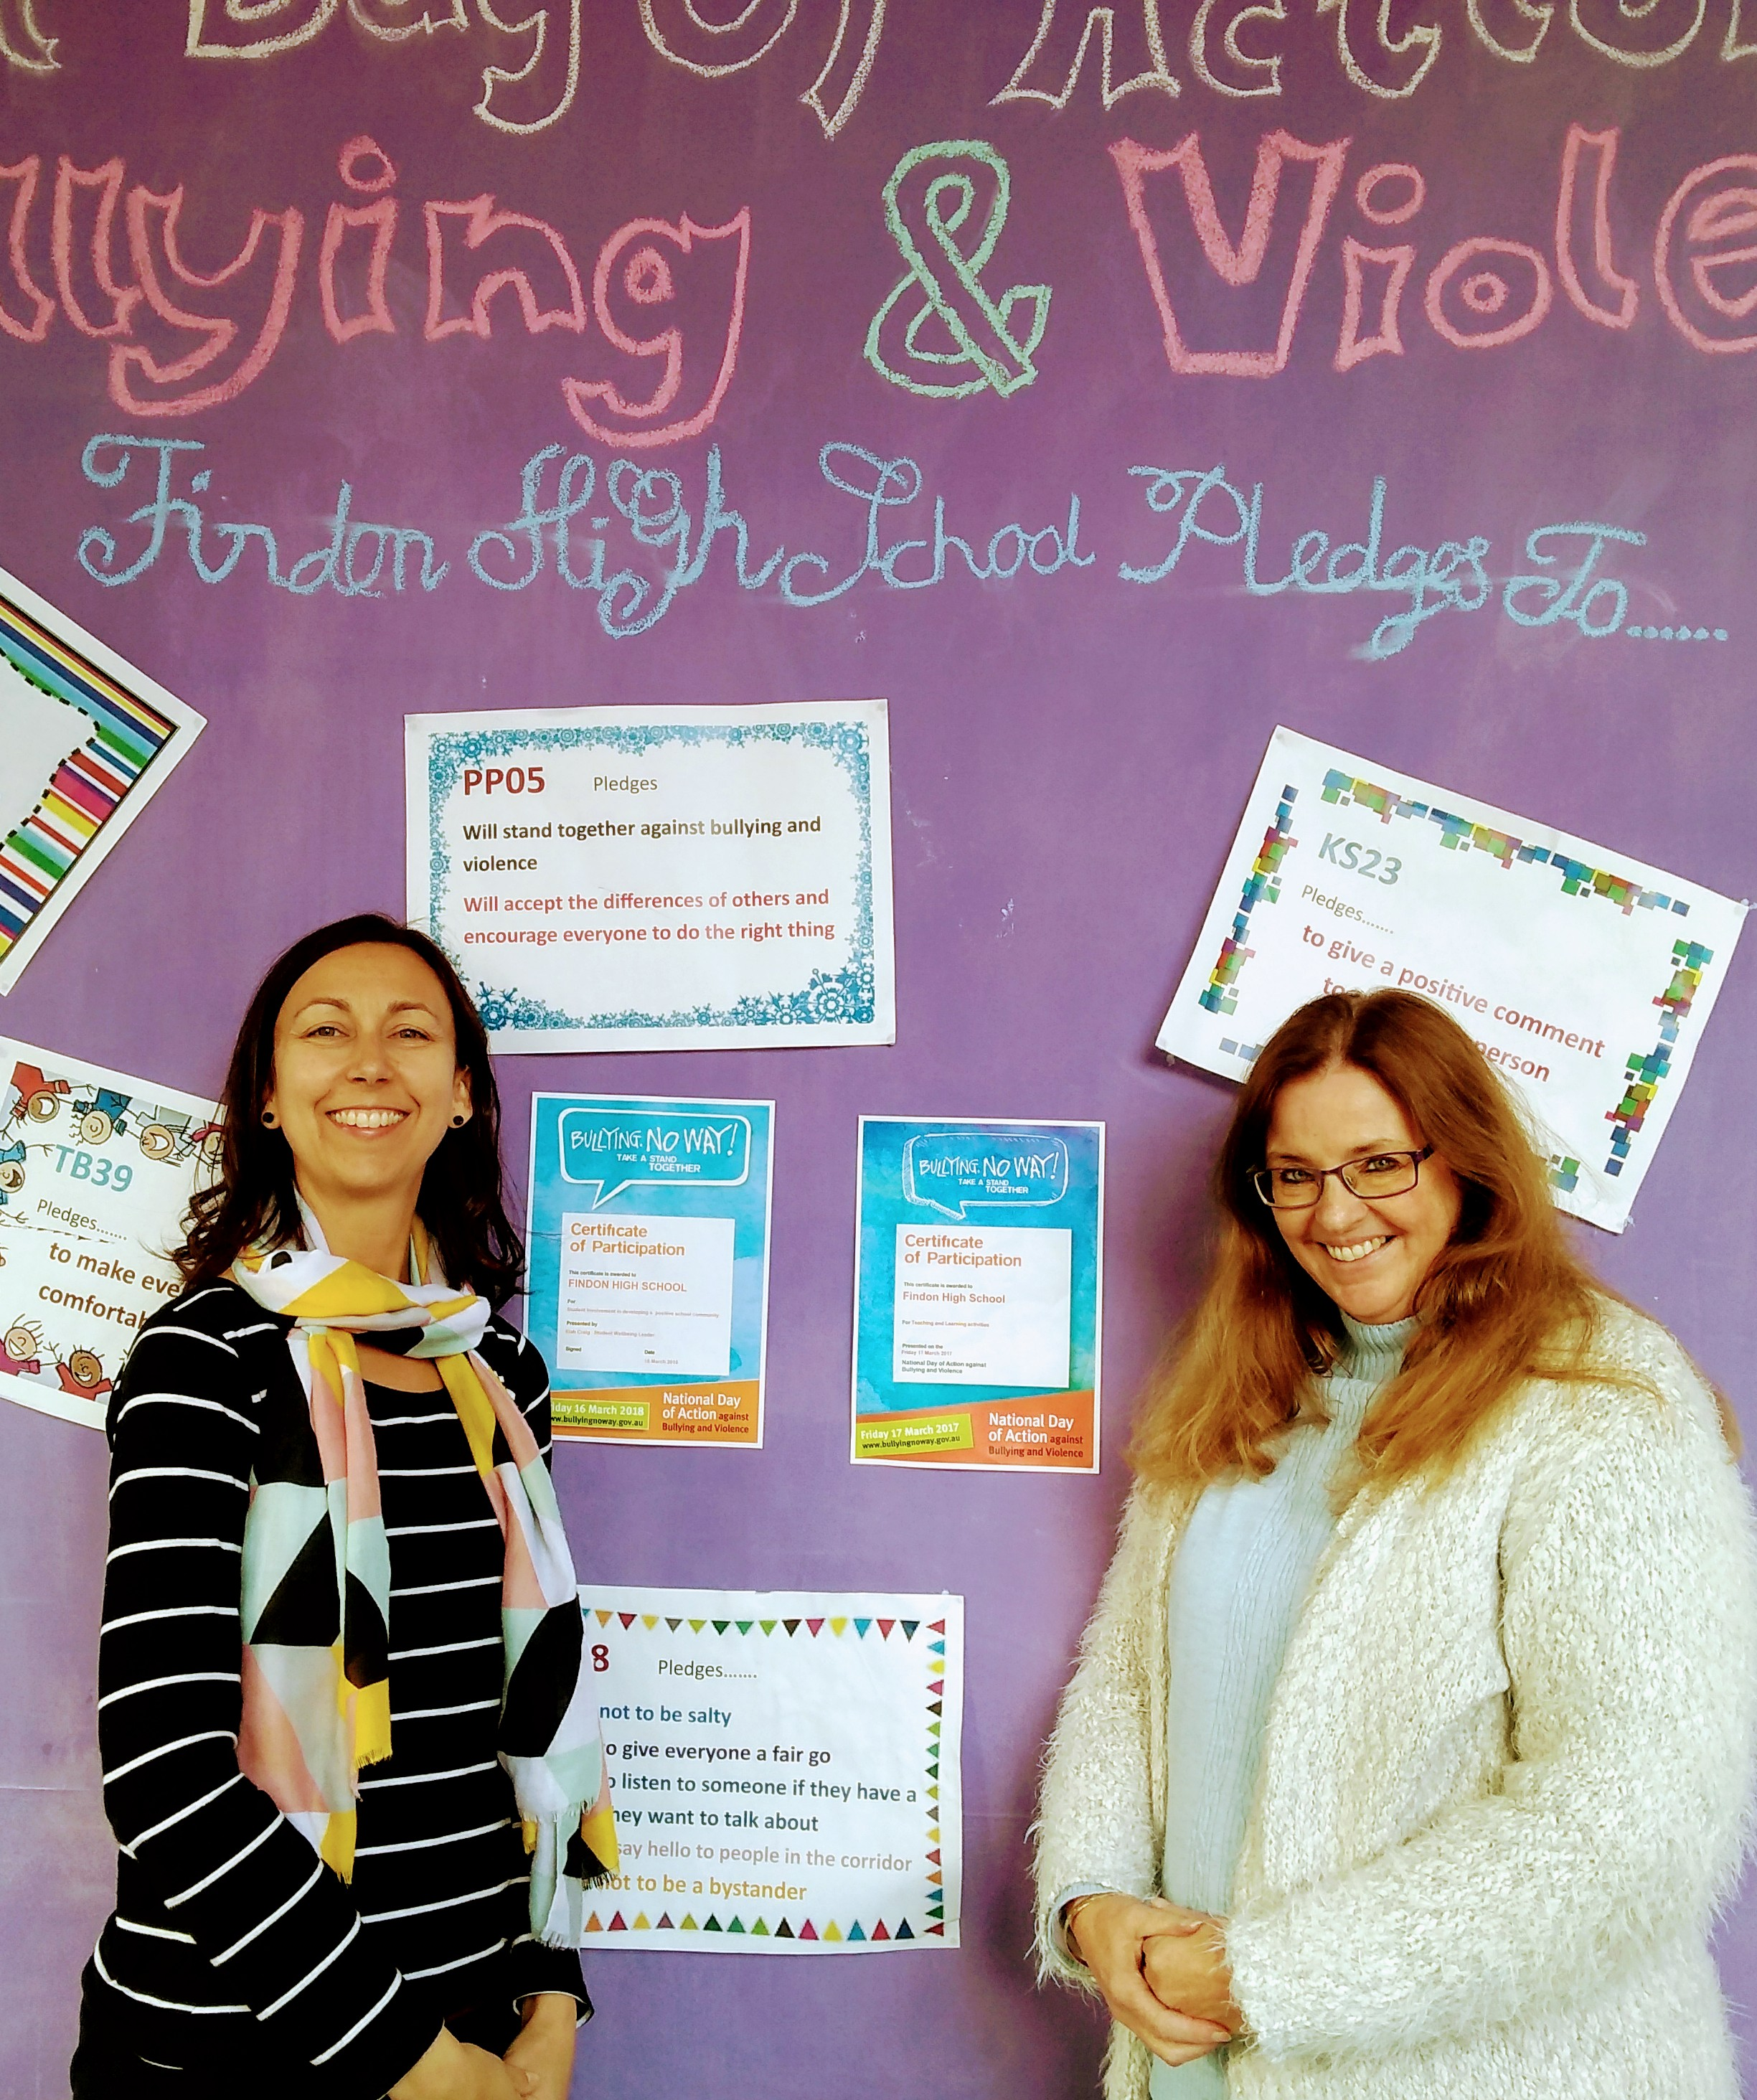 Kiah Craig, Student Wellbeing Leader and Kathy Pivetta, SMG Pastoral Care Worker